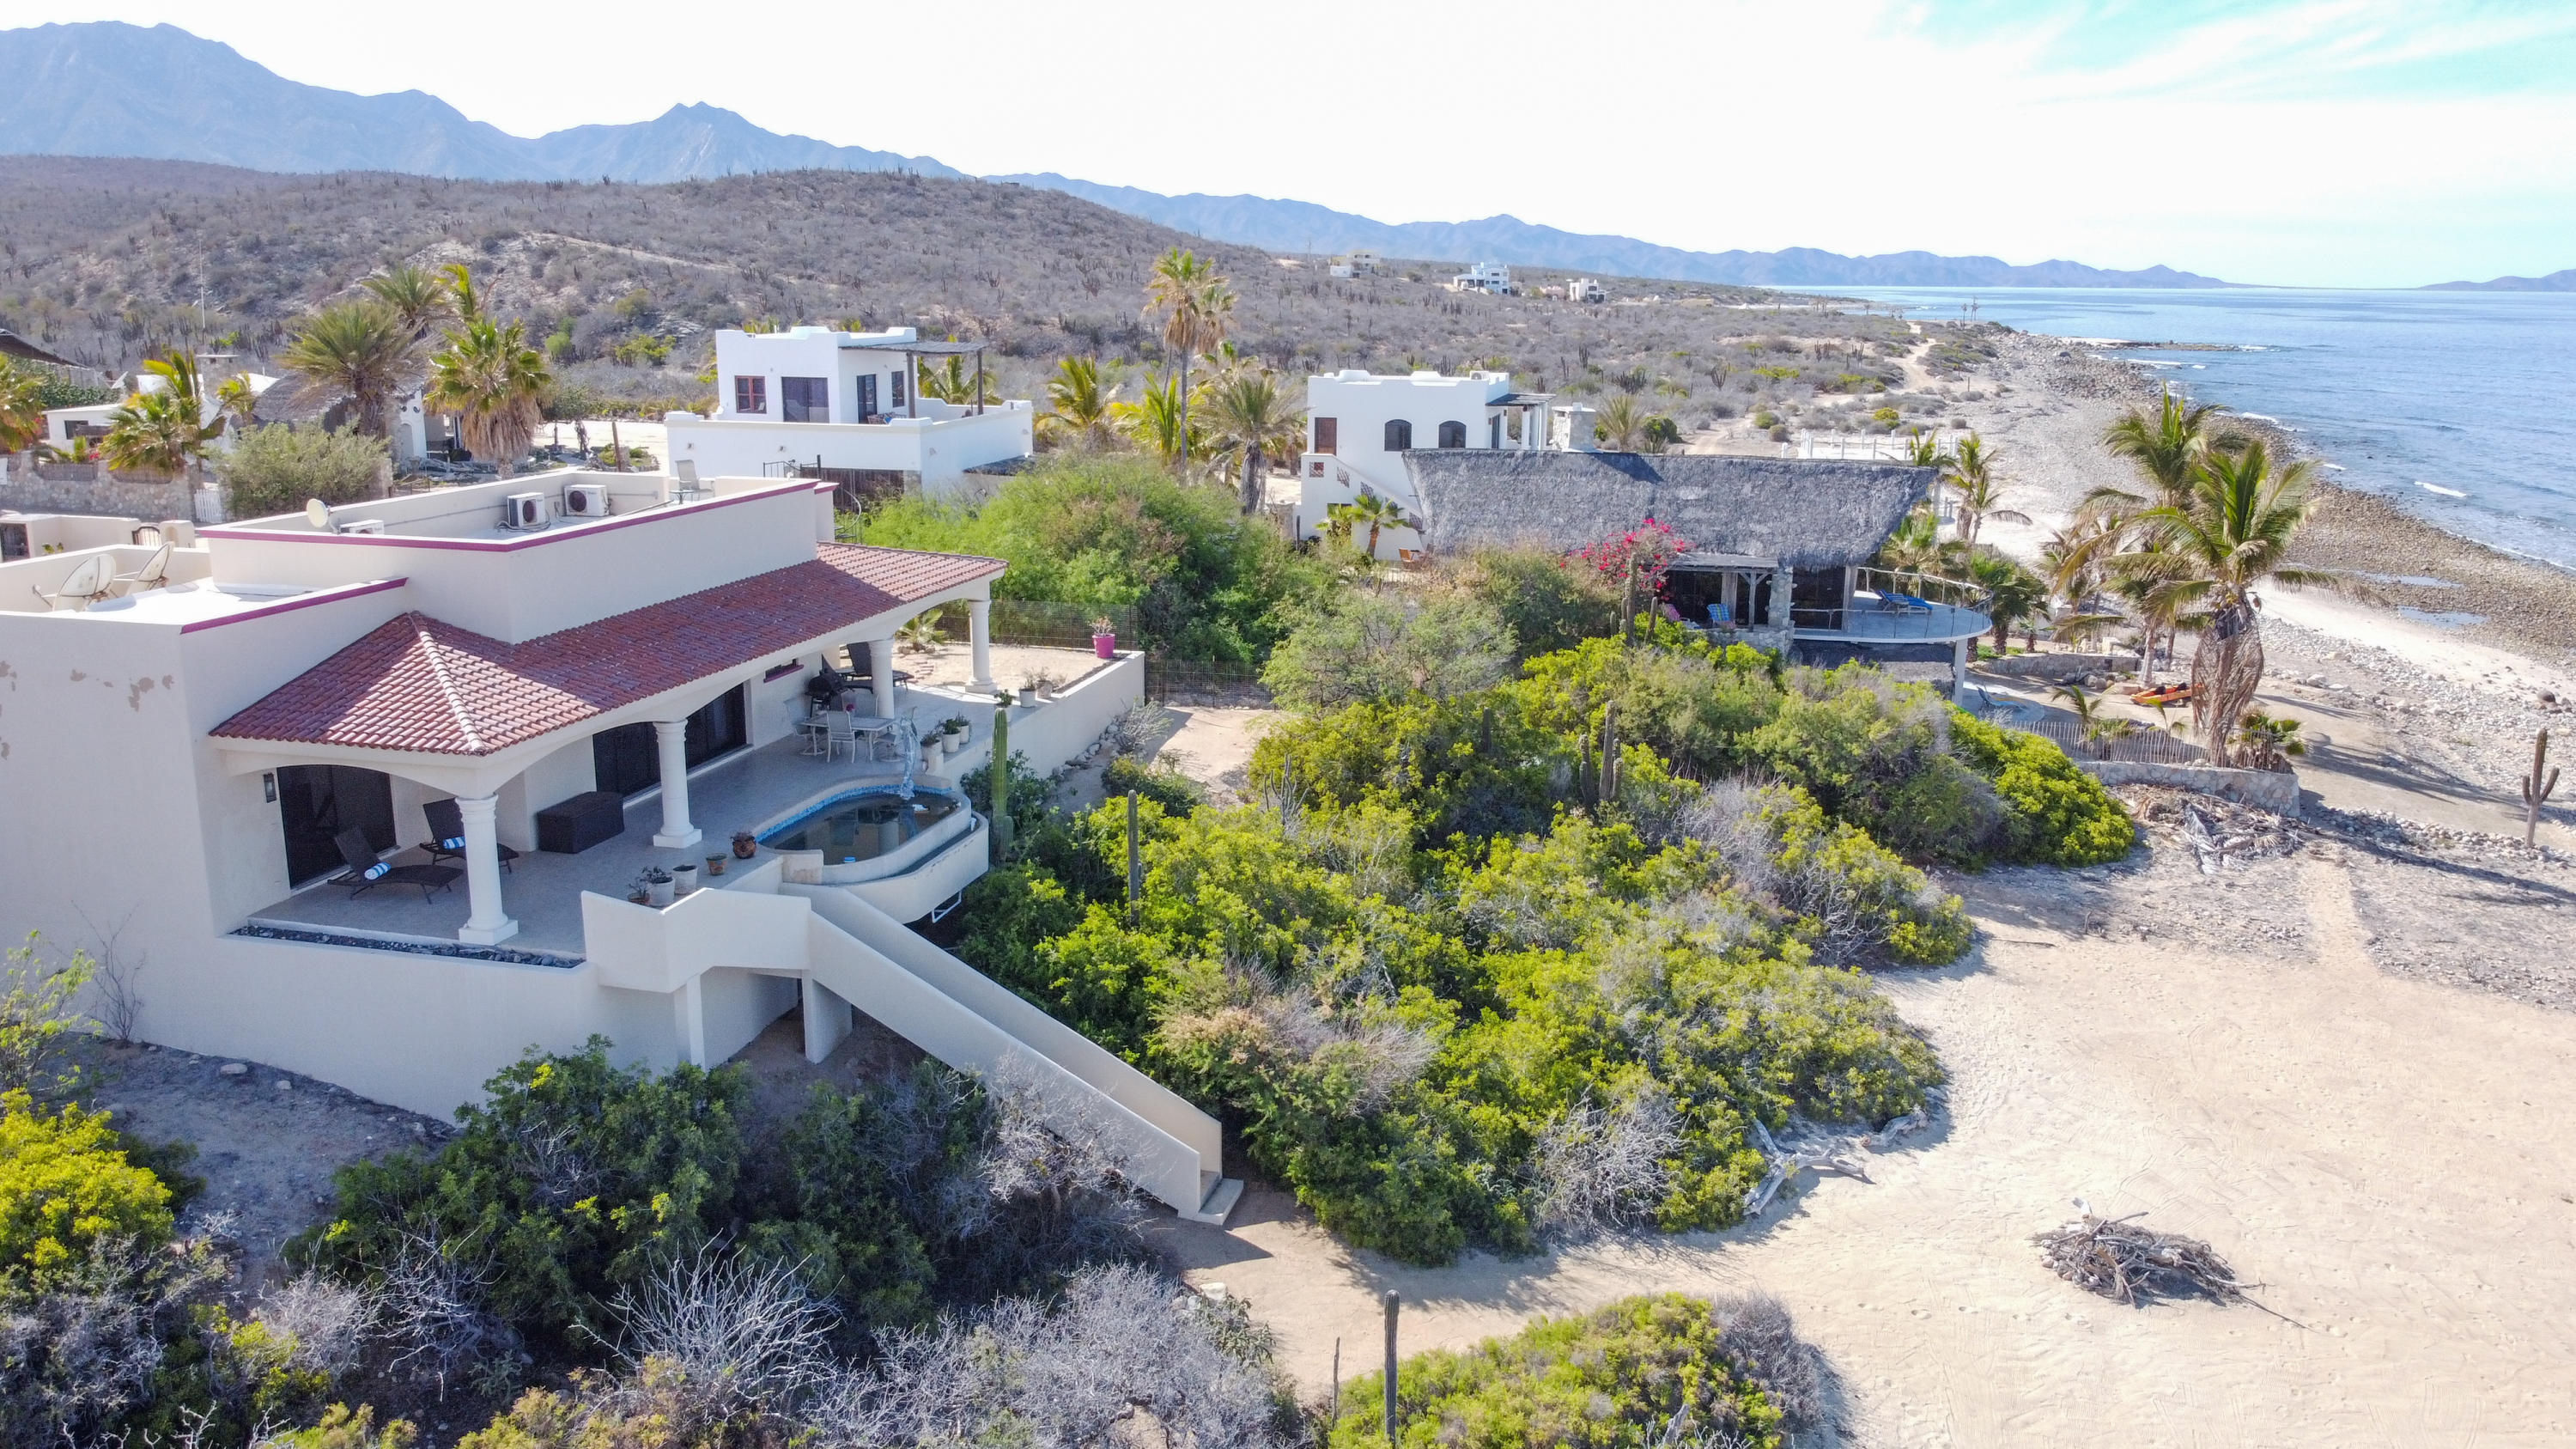 ** Seller is prepared to offer a $25k discount to purchase price for the construction of a new garage.  This offer is only available until November 31st 2021** This stunning turn-key house is on almost 1/2 acre lot. Unsurpassed views of ocean from every window. 2 ensuite bedrooms, open plan kitchen with island, large sitting room with pocket doors. Large covered patio area allows you to soak up best of Sea of Cortez: watch whales, dolphins & rays play.   Benefit from sandy beach area with sandy access to water.  Excellent snorkeling & safe for swimming & water sports.  High end finishings throughout: ash cupboards, granite kitchen counter.  Dipping pool with seating ledge allows you to survey the ocean while enjoying the tranquility that is El Cardonal.